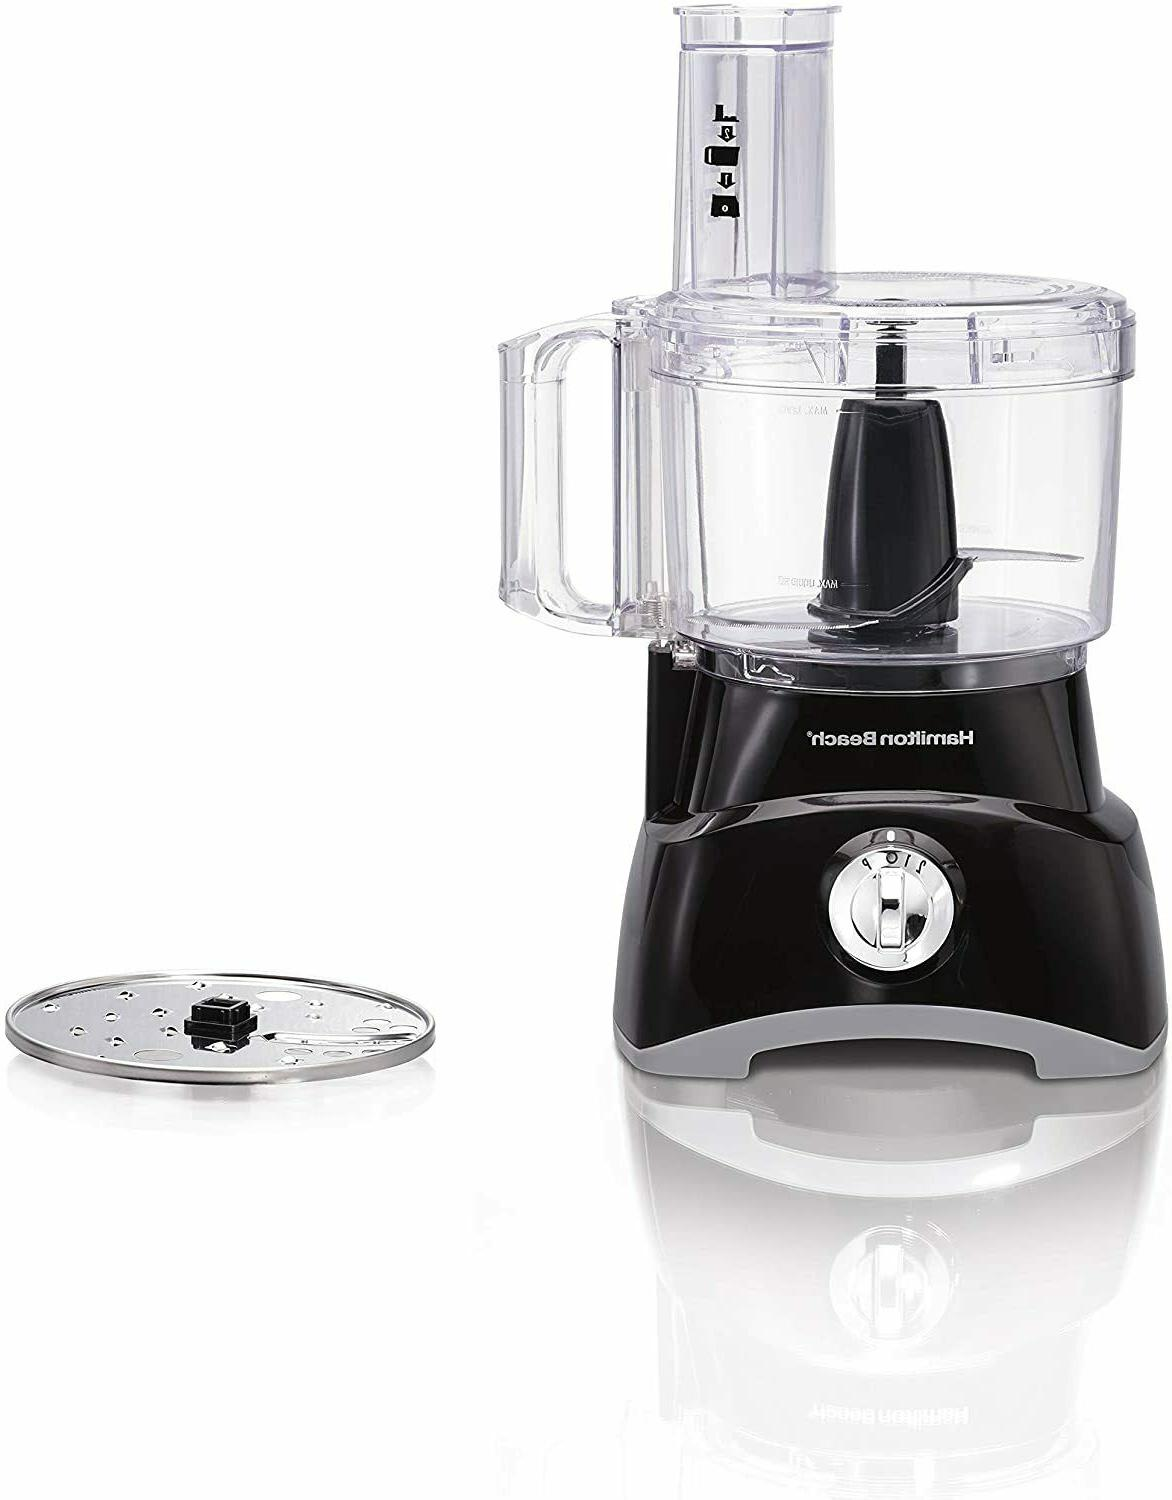 Hamilton 8Cup Food Chopper for Slicing,